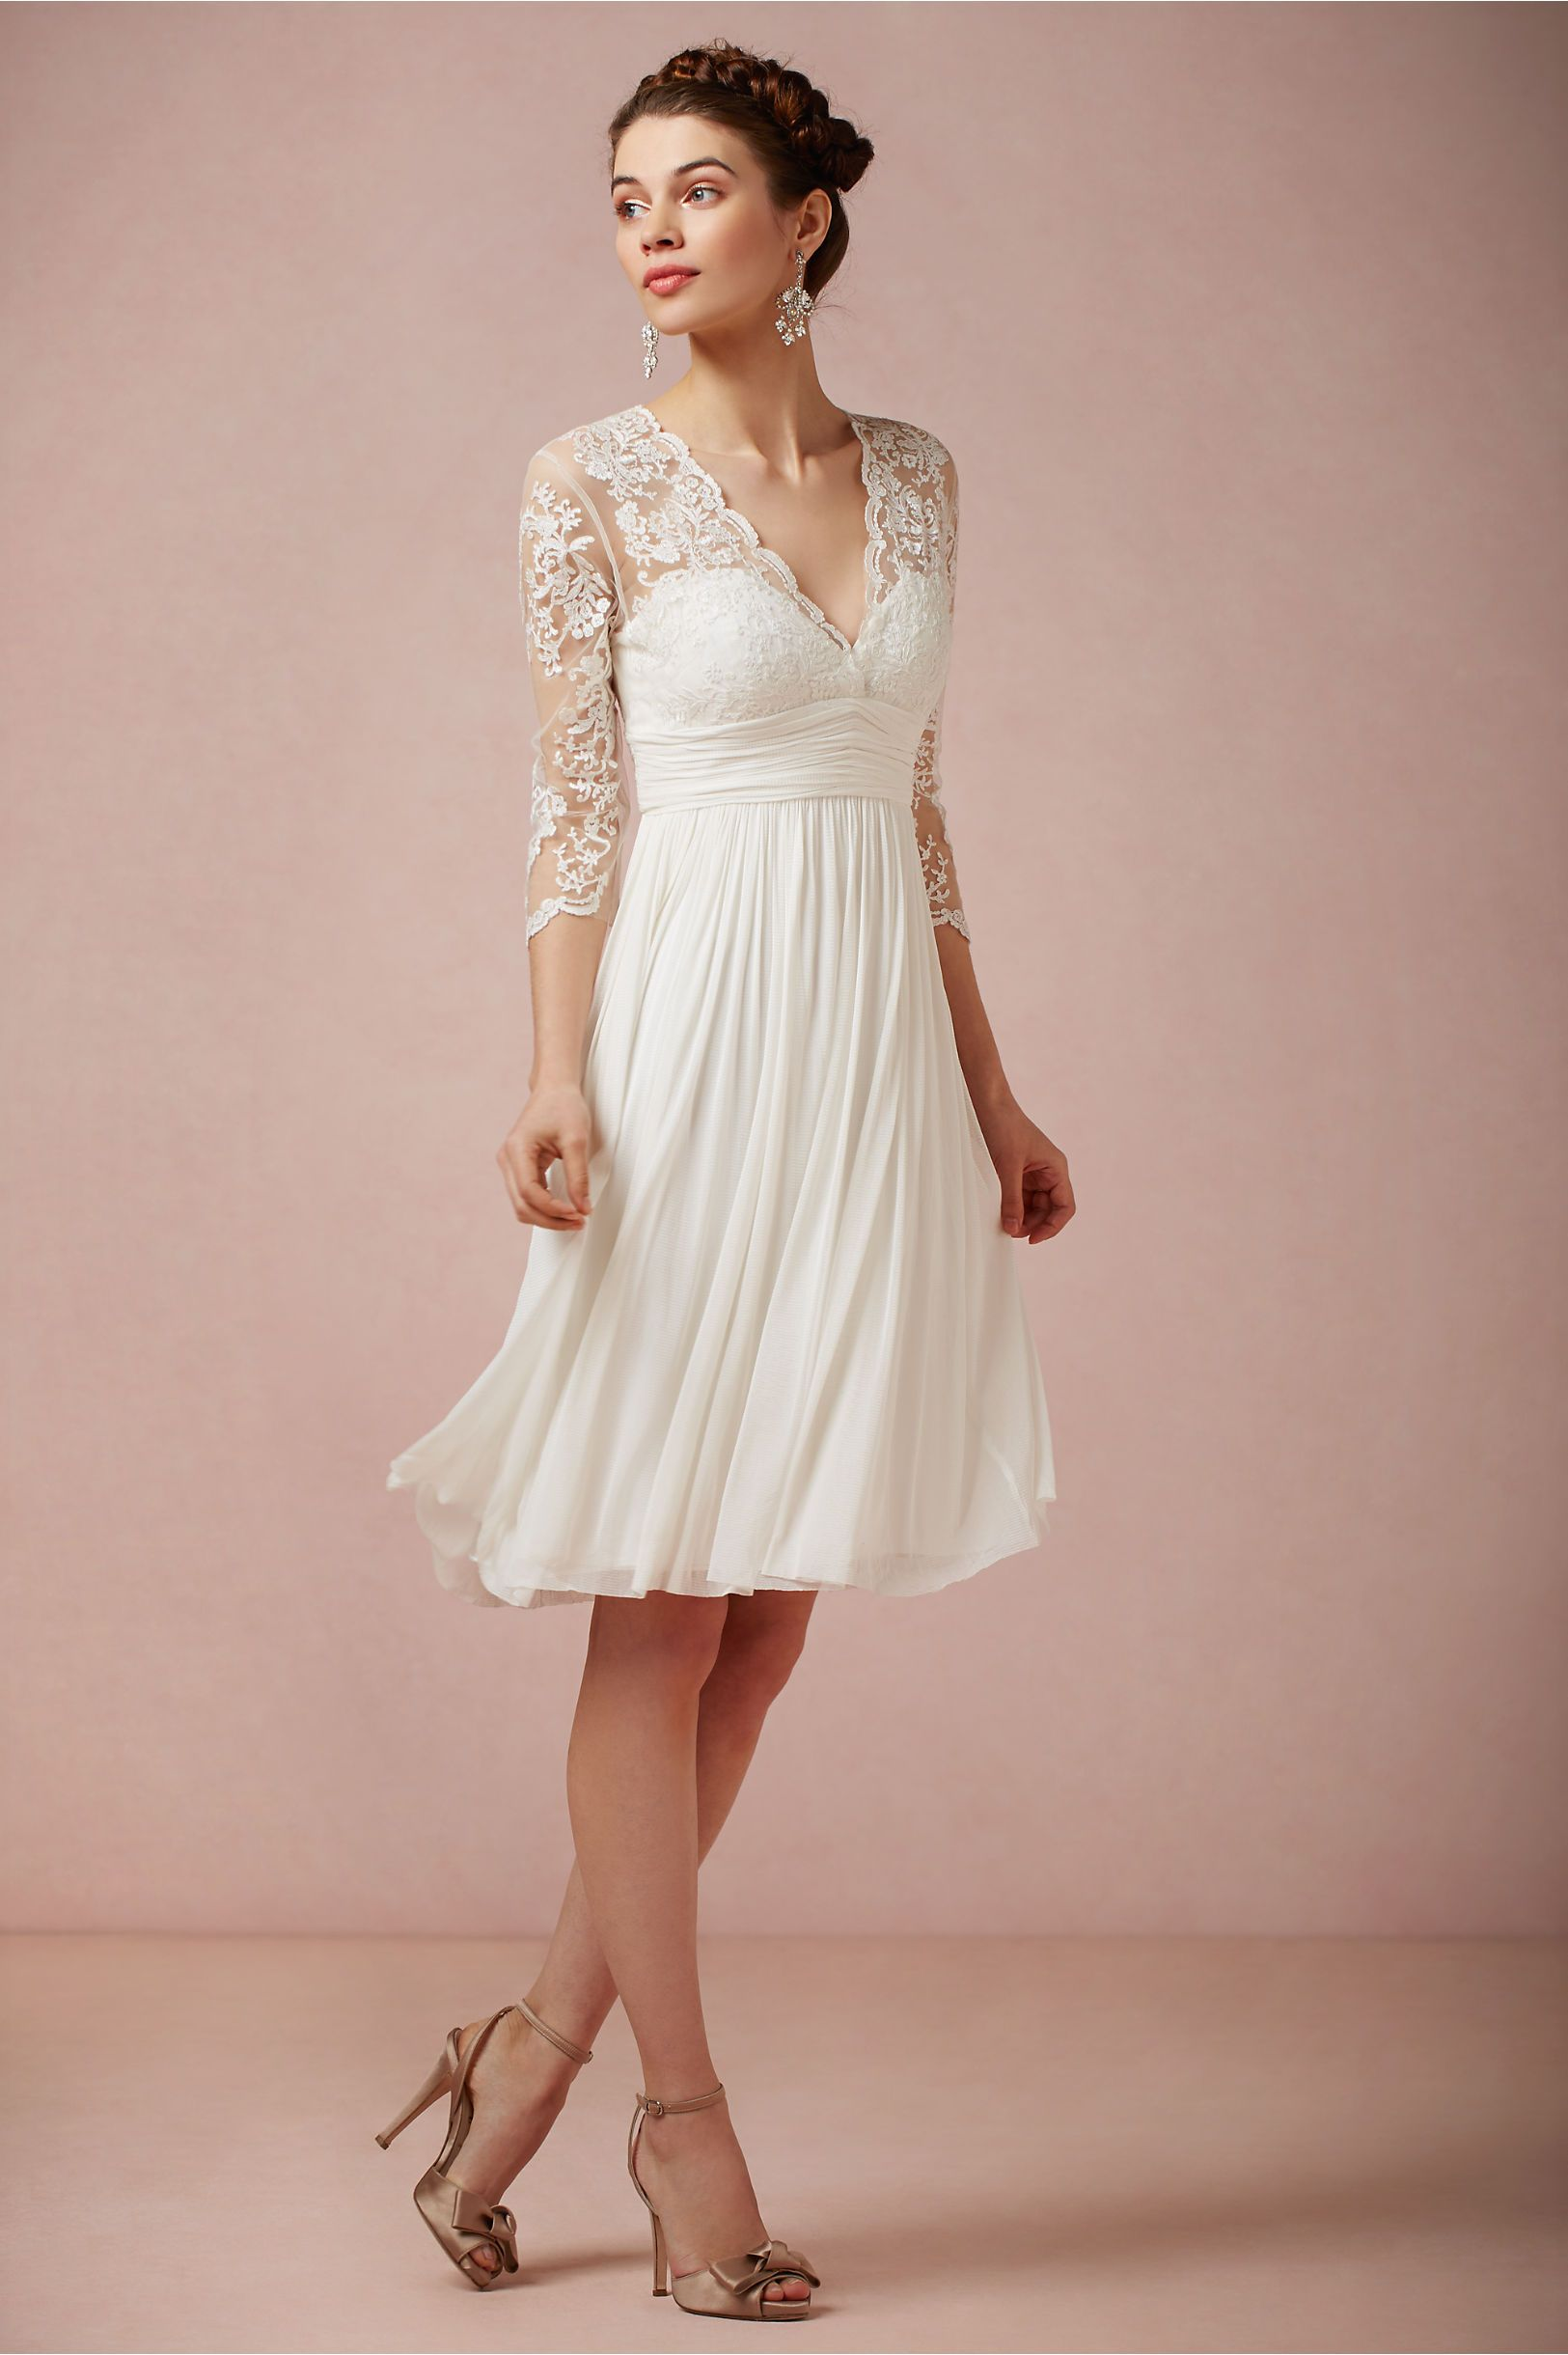 Omari dress in bride reception dresses at bhldn wedding